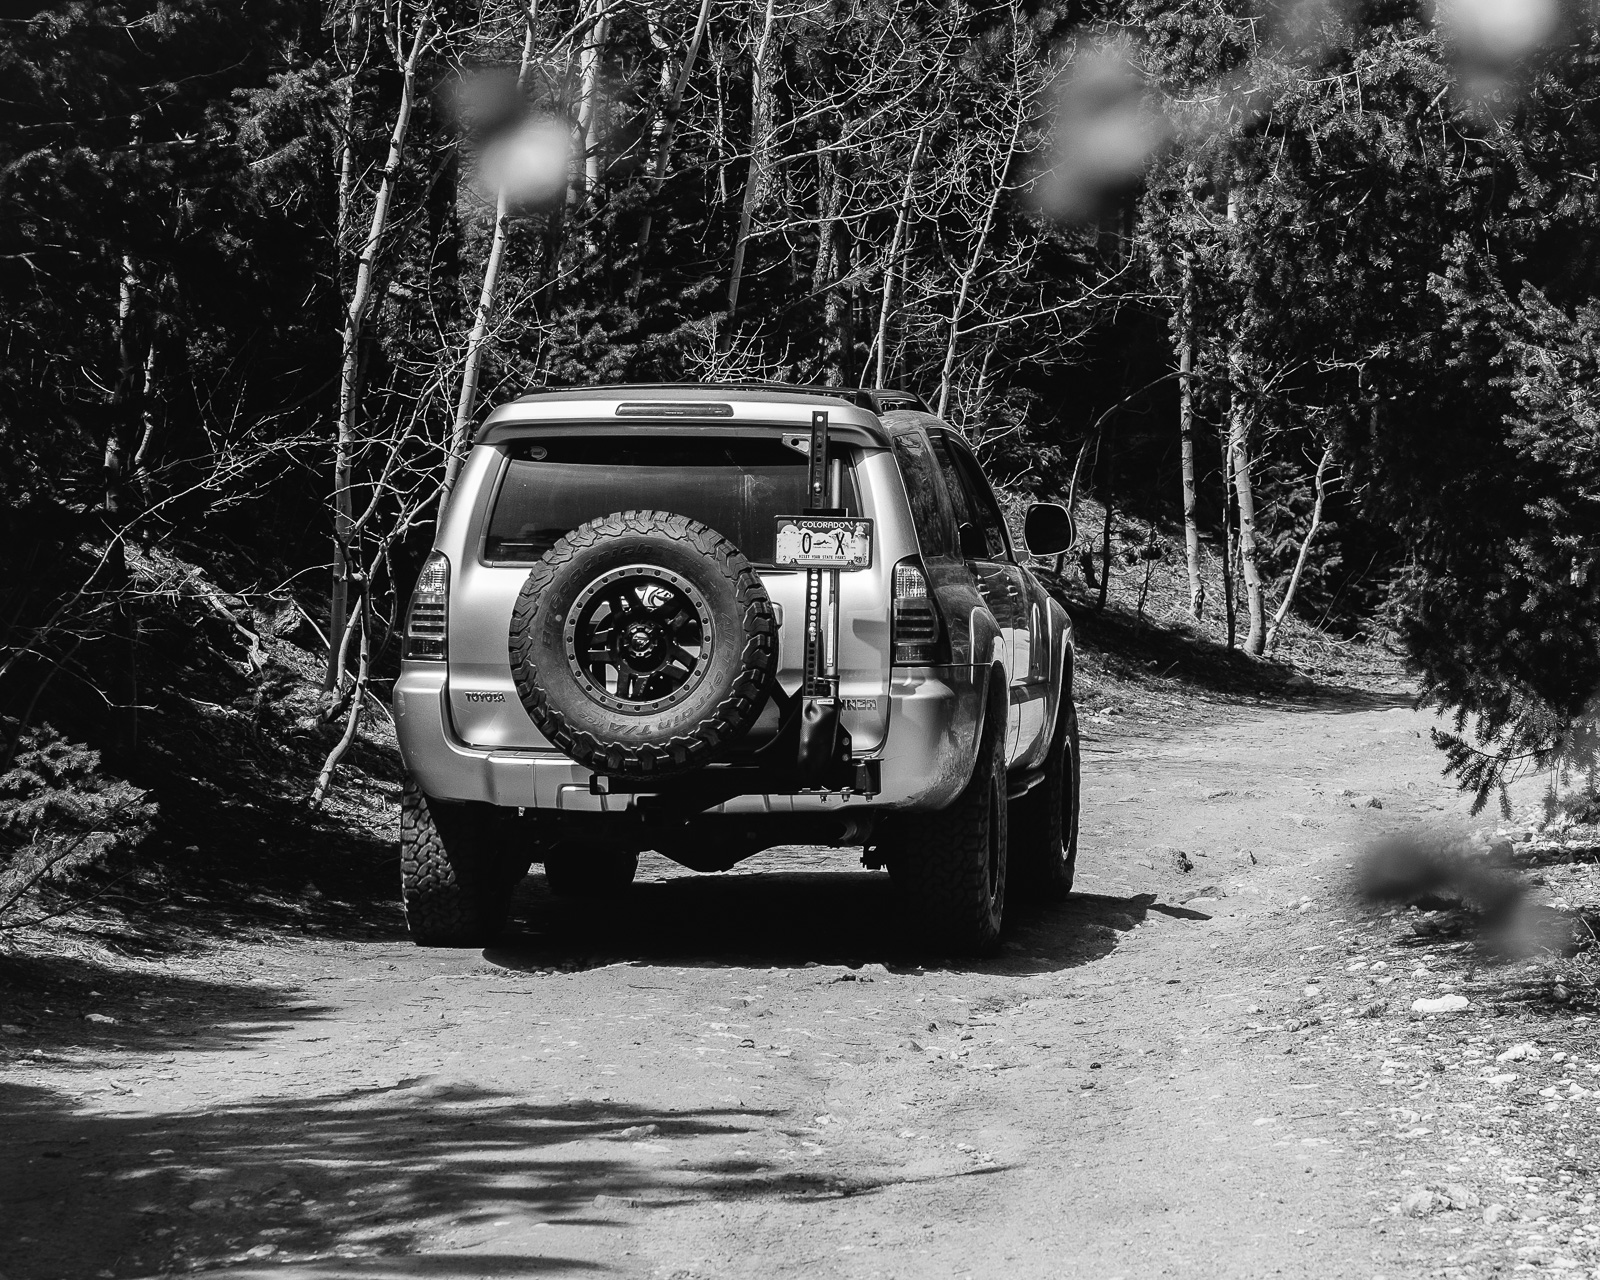 Day 155- 365 Day B&W Photo Challenge - 4Runner out on the trails in the Indian Peaks Wilderness - Fuji X-T3, XF50-140mm f/2.8, Acros R Film Simulation